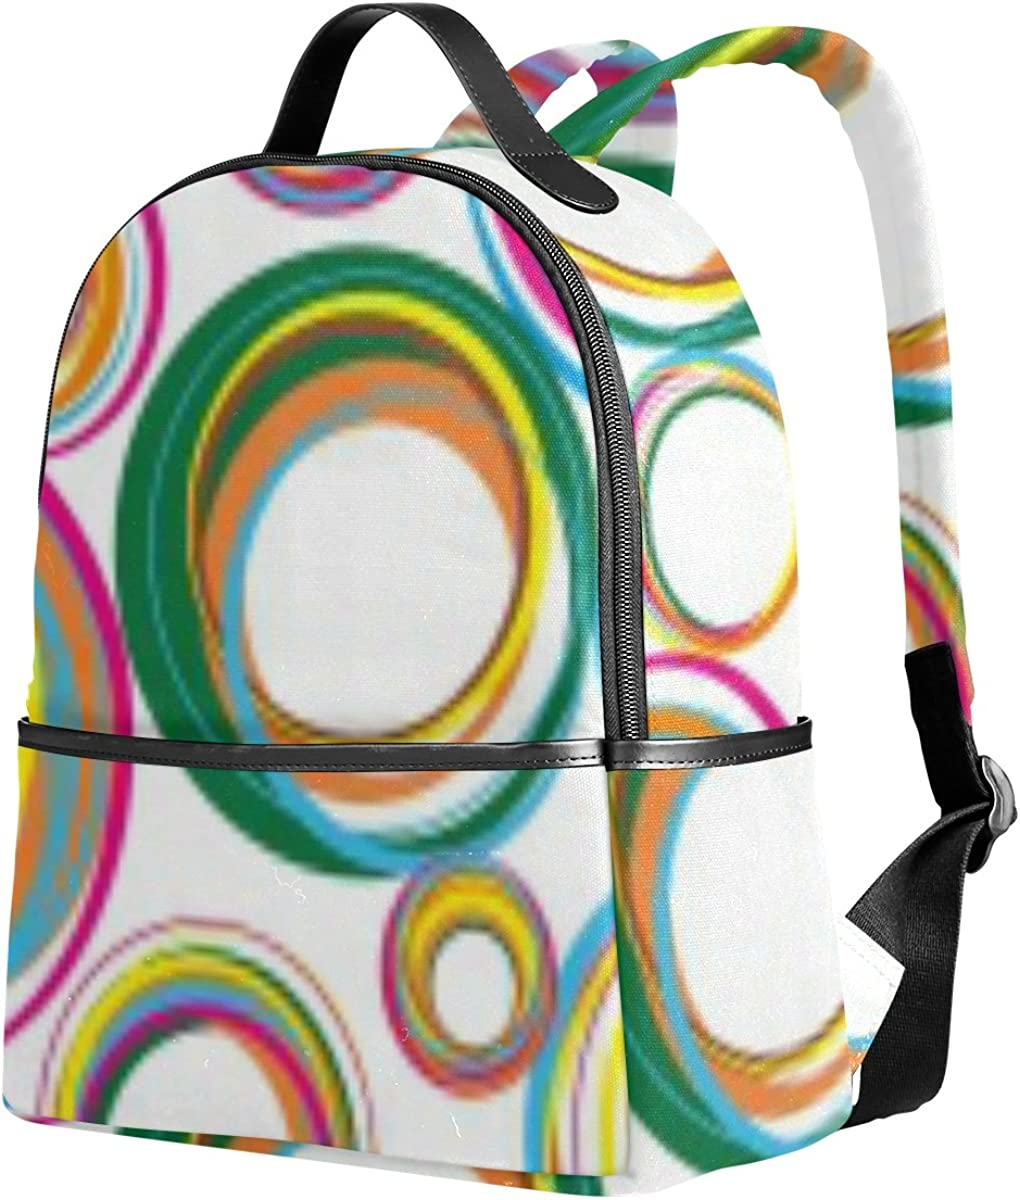 Mr.Weng Color Small And Pure Fresh Air Bubbles Printed Canvas Backpack For Girl and Children